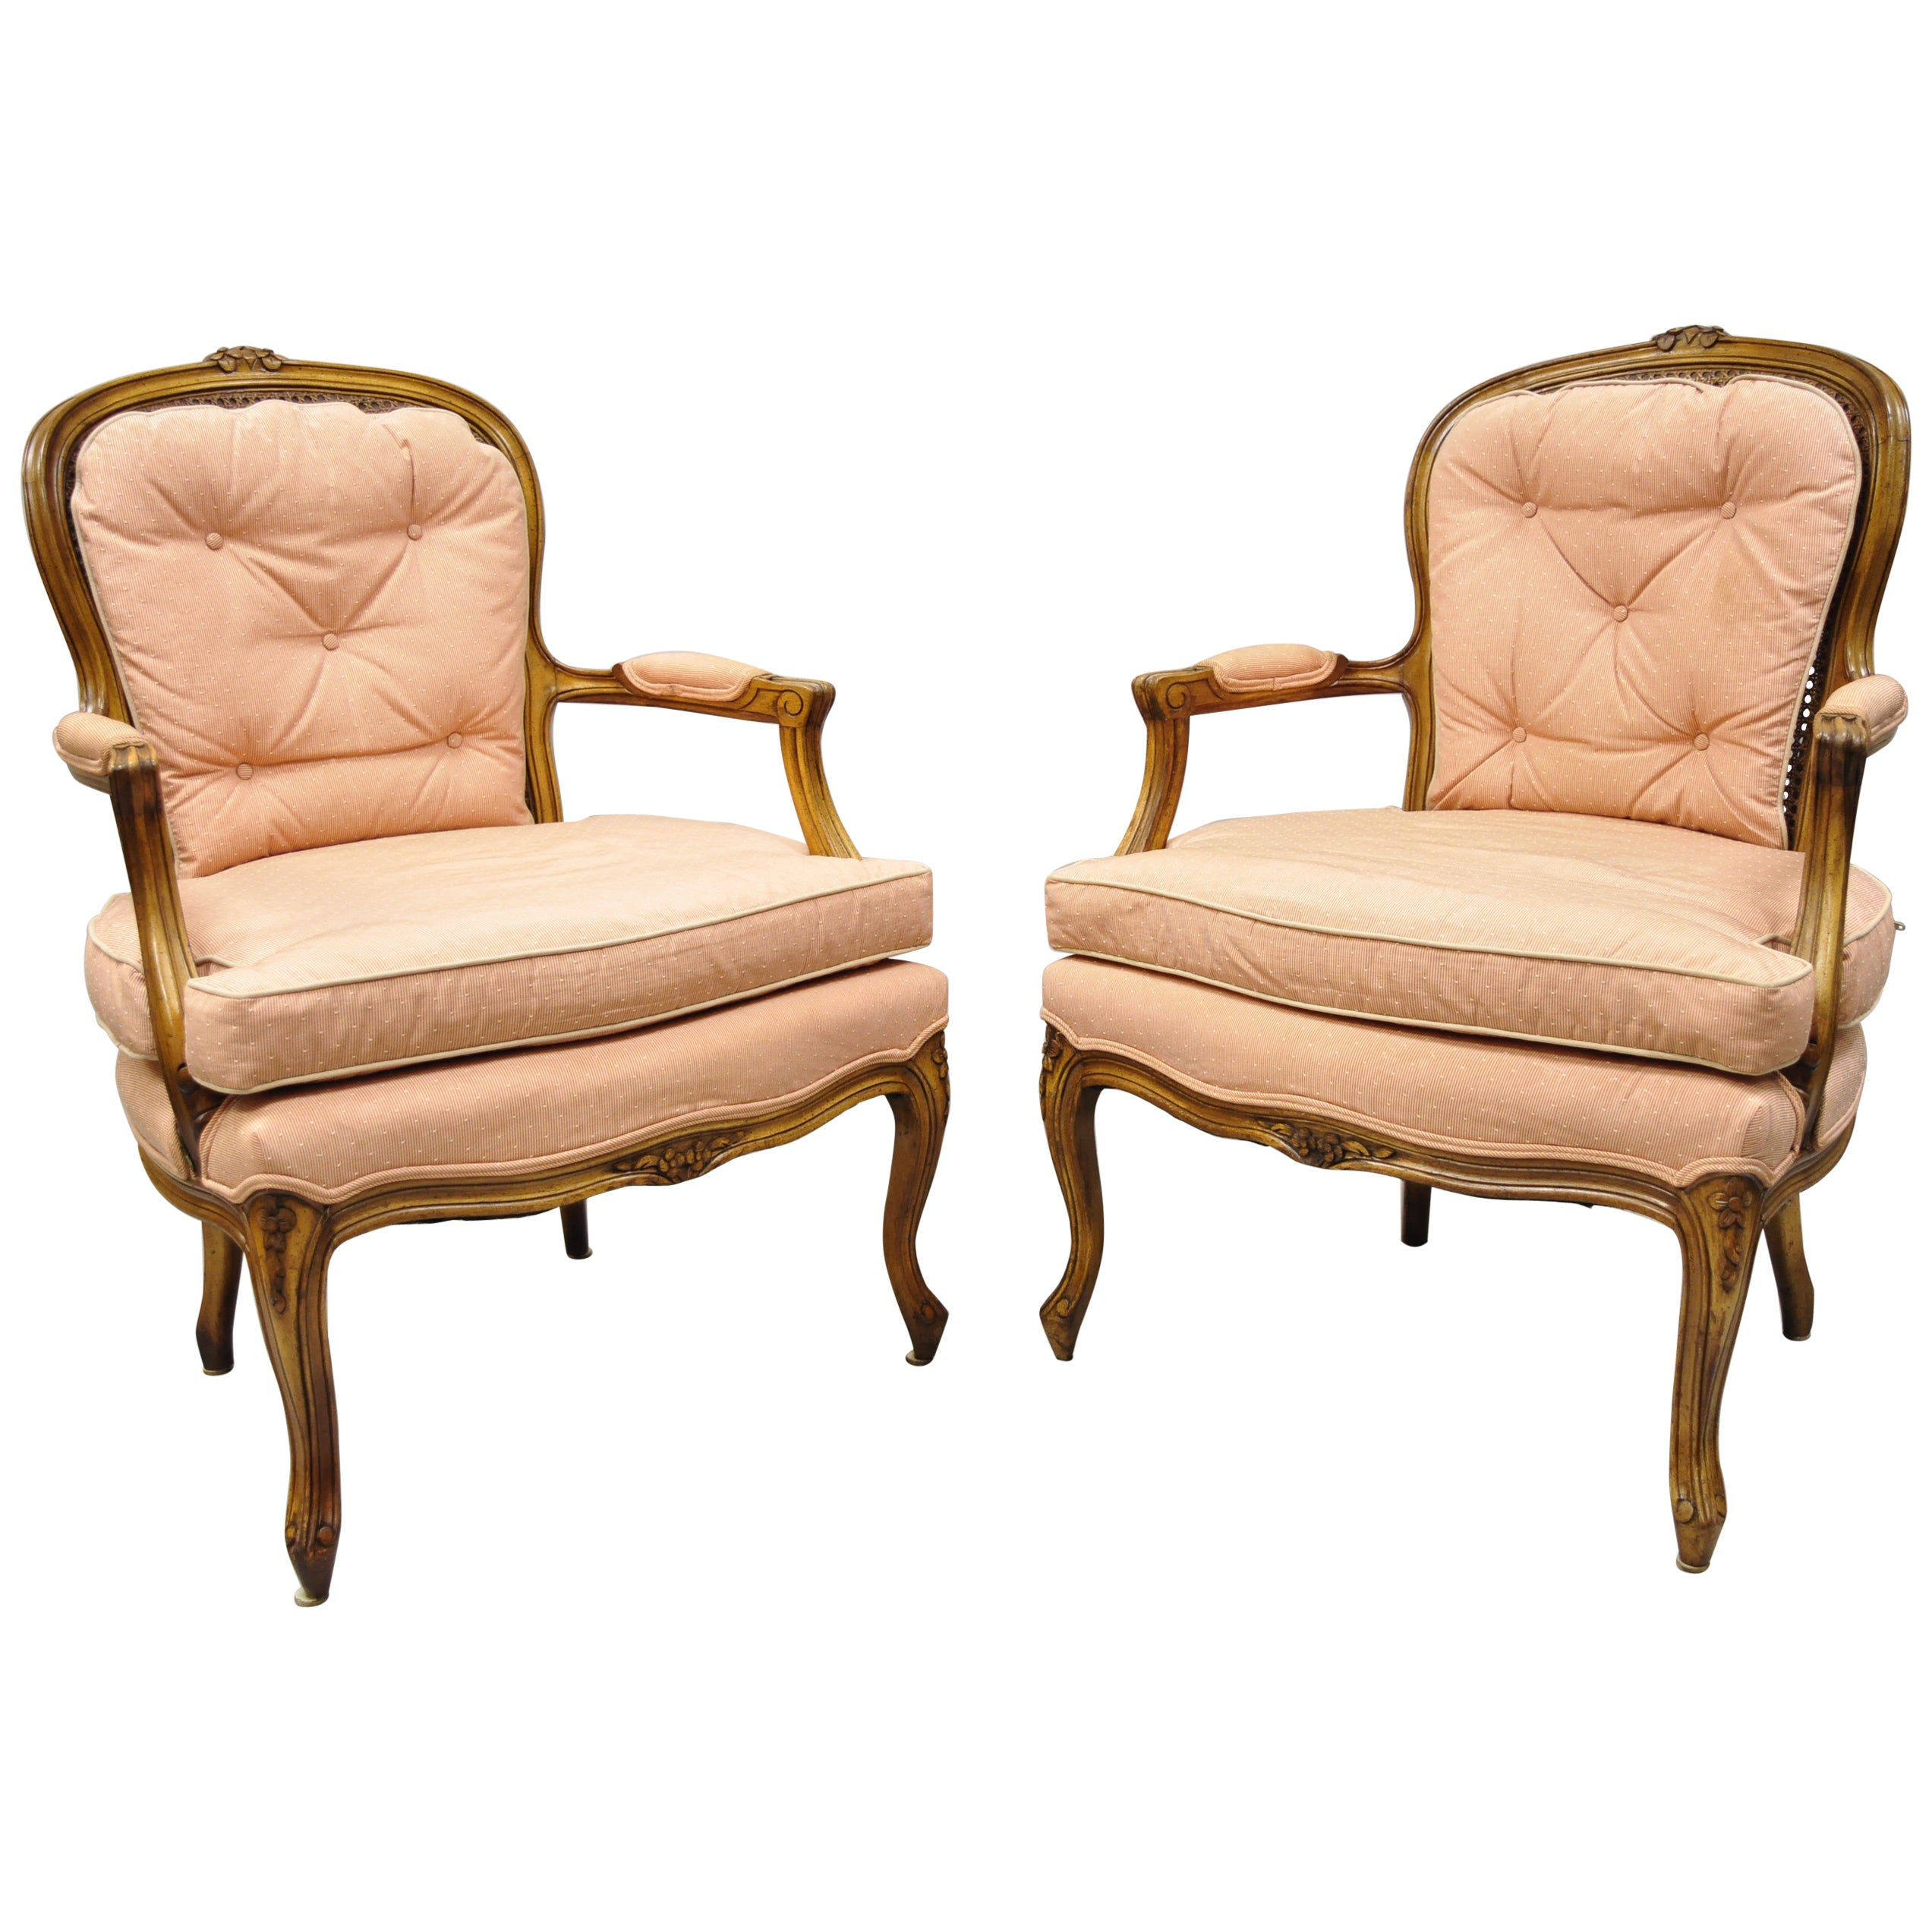 French Louis XV Provincial Style Carved Walnut Cane Back Armchairs, a Pair